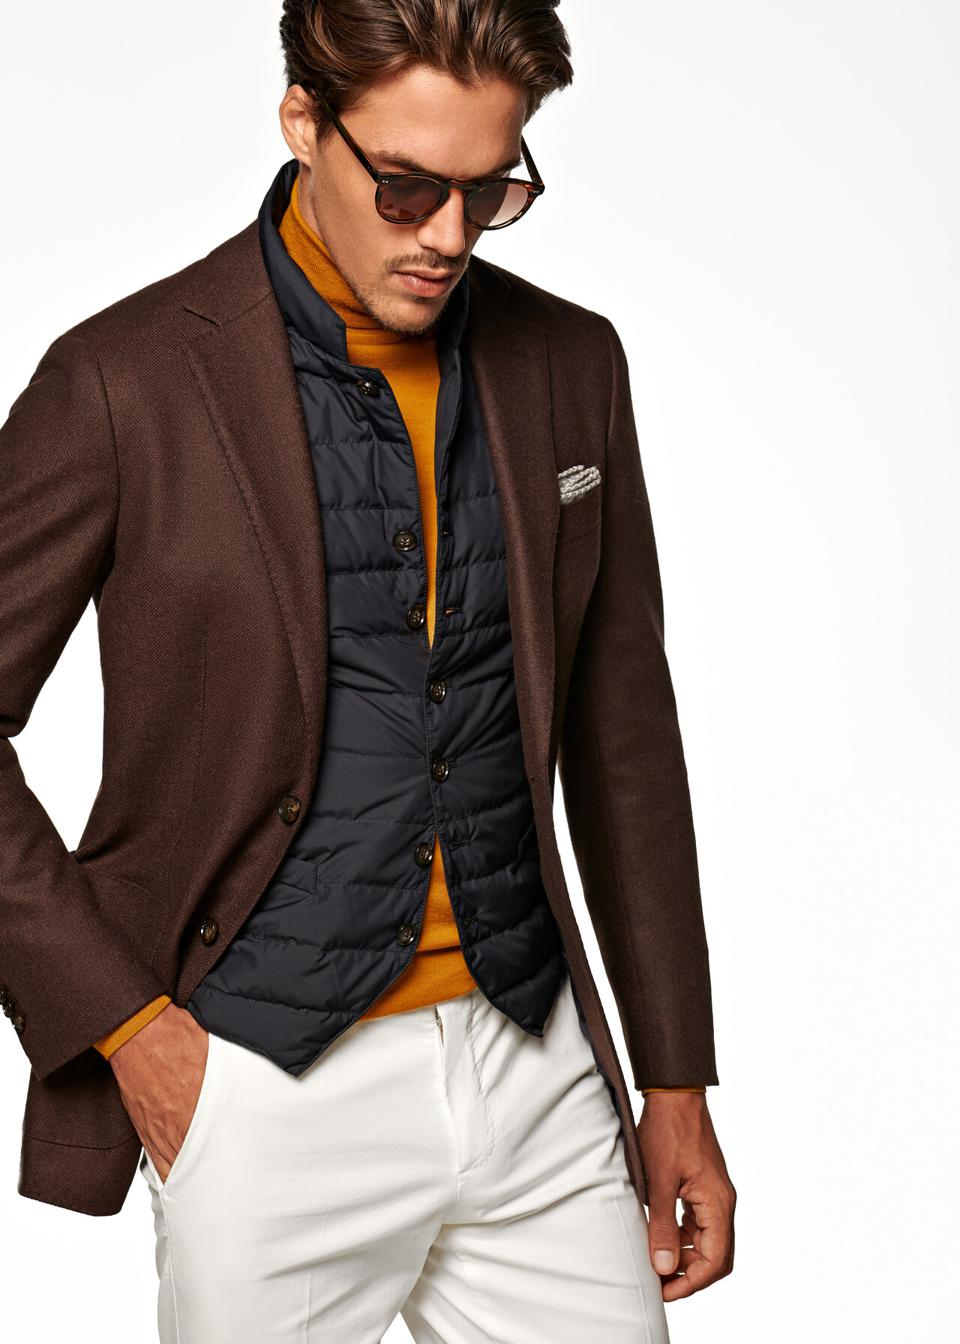 Suitsupply FW 20